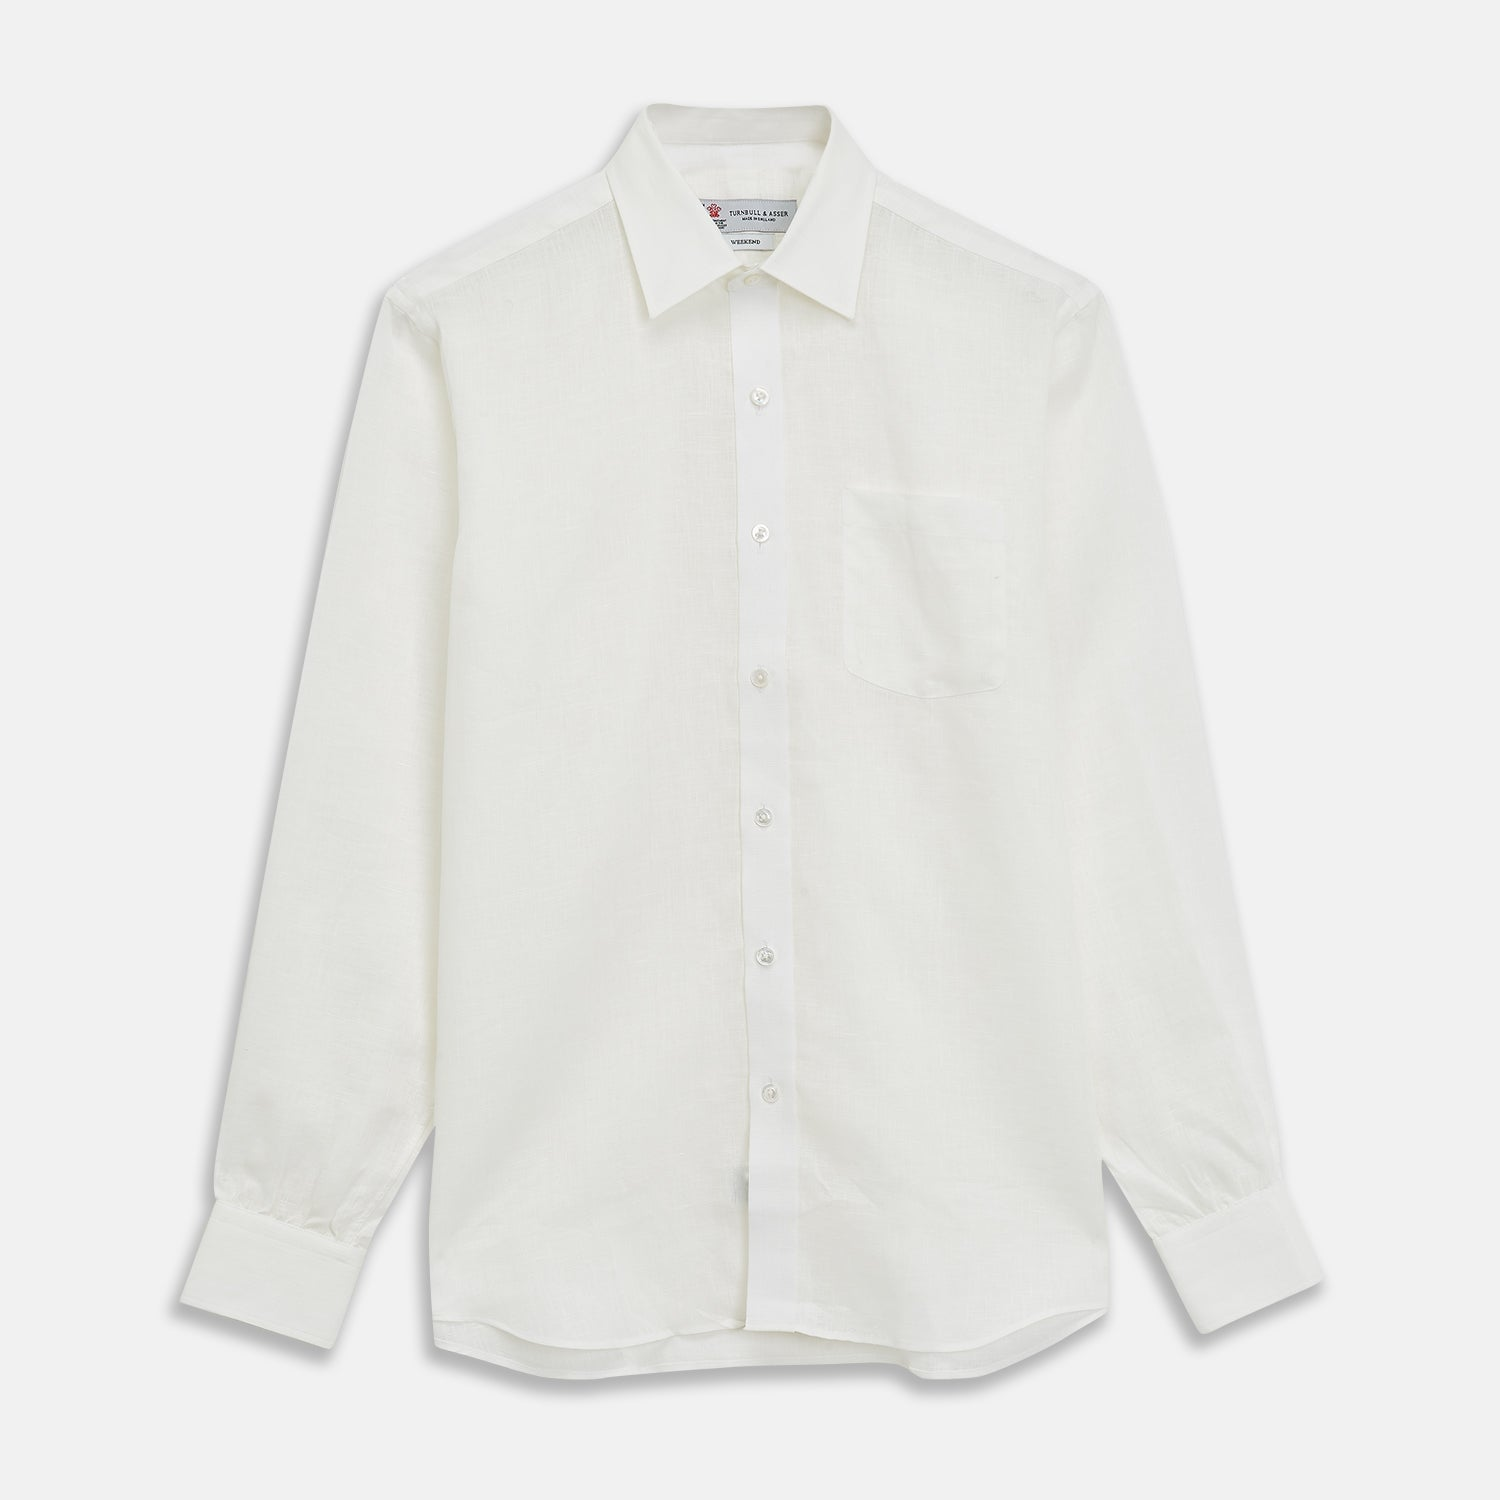 Cream Linen Weekend Fit Shirt with Derby Collar and 1-Button Cuffs - M from Turnbull & Asser